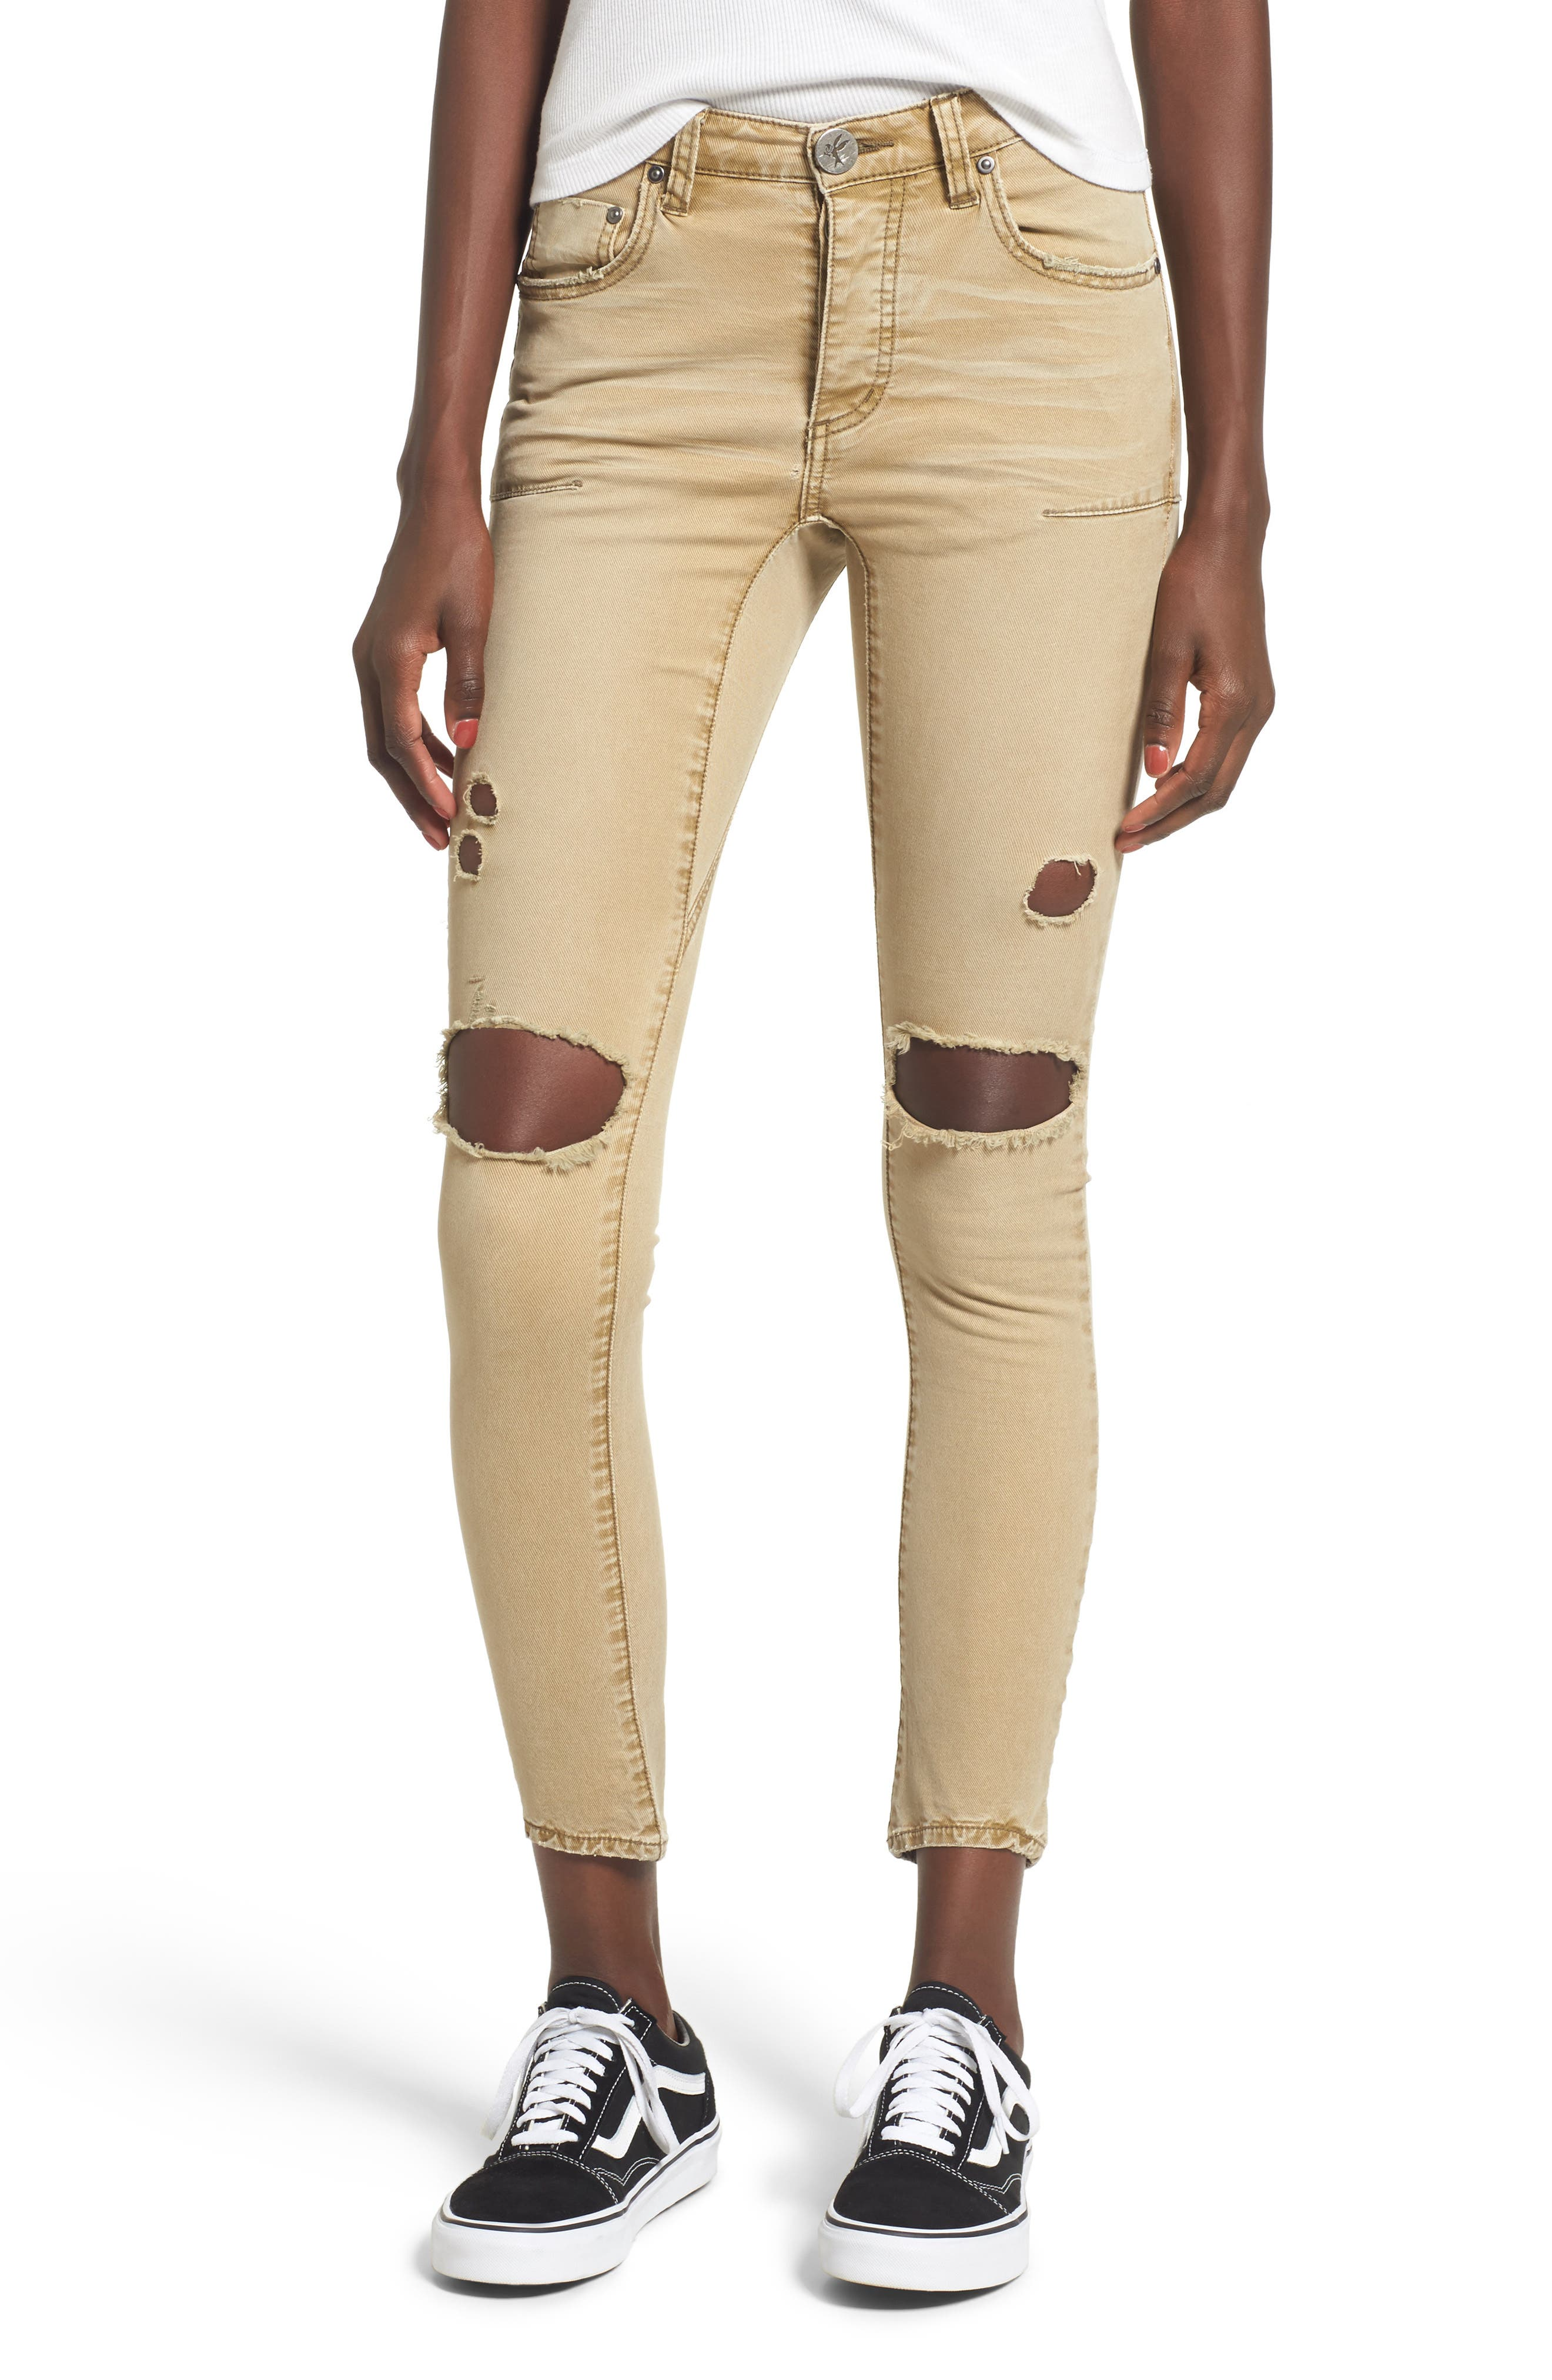 Freebirds Ripped Low Waist Skinny Jeans,                         Main,                         color, Tobacco